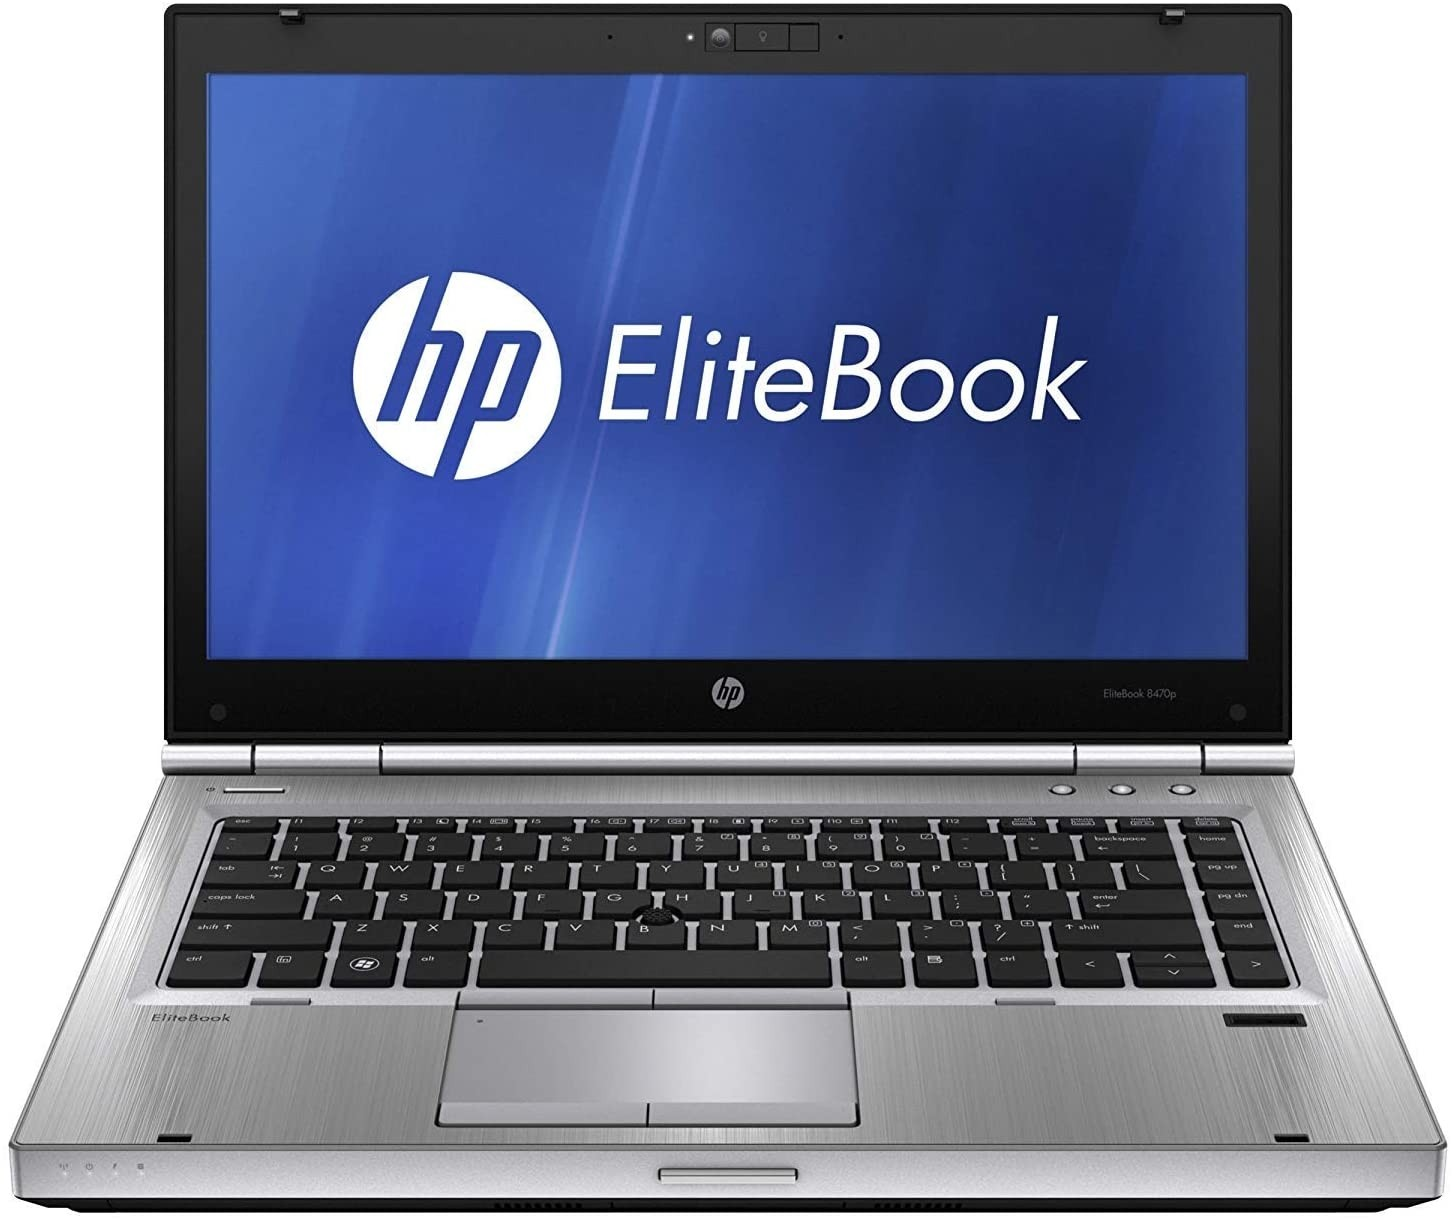 Refurbished laptops & desktops - REFURBISHED HP ELITEBOOK 8470P (CORE I5 3RD GEN/8GB/320GB/WEBCAM/14''/DOS)